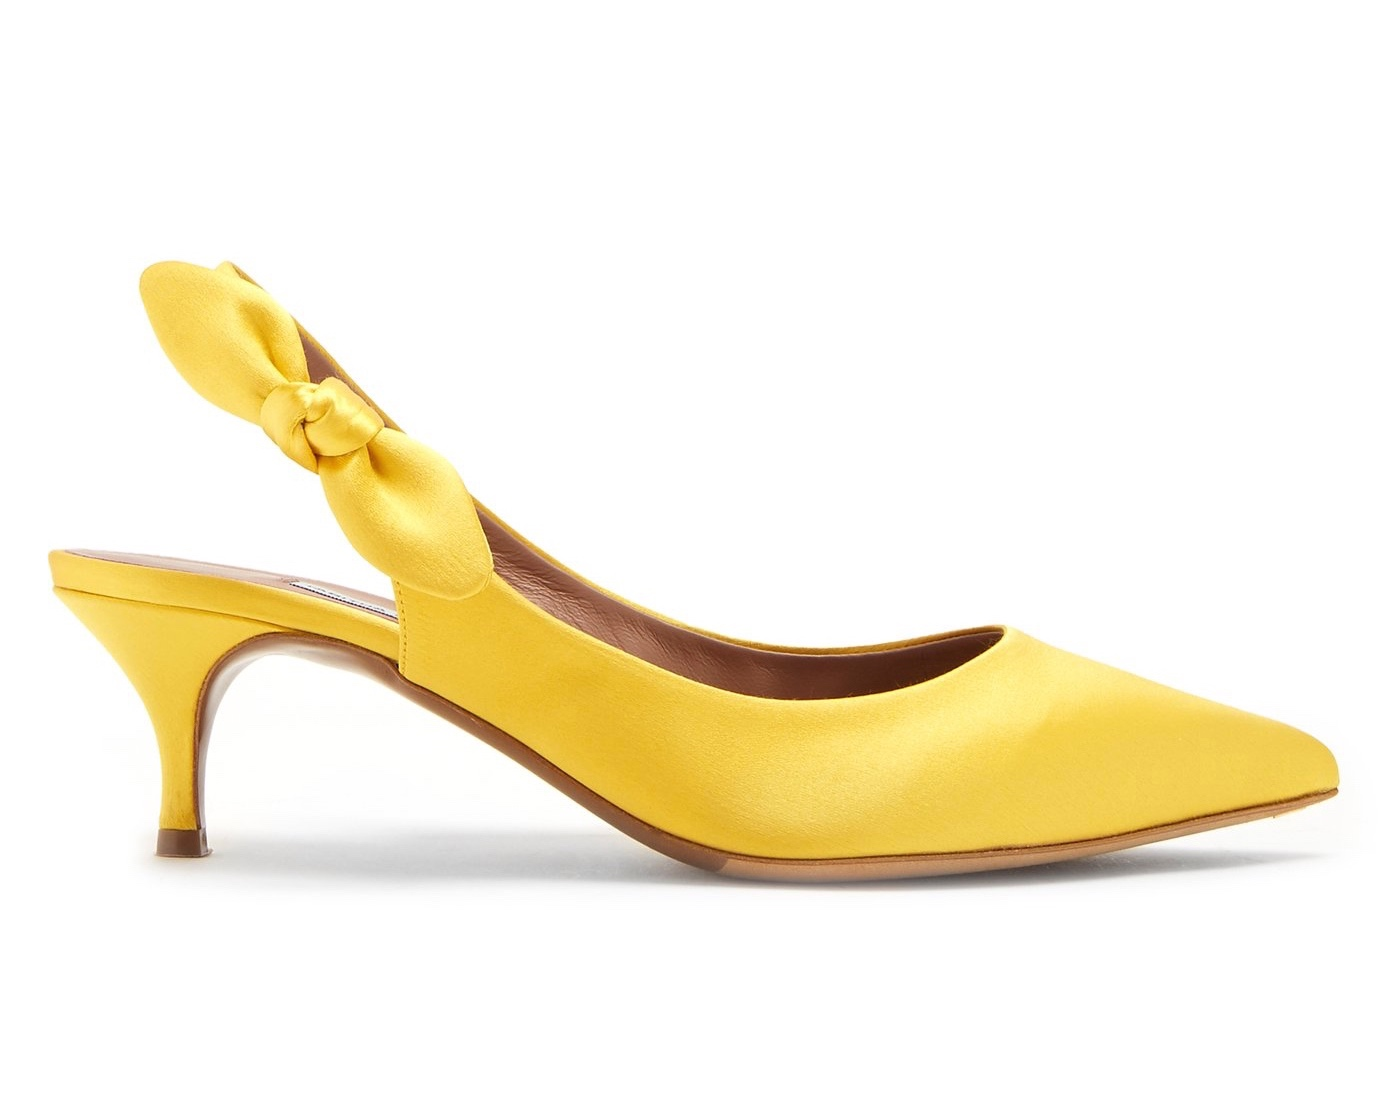 Tabitha Simmons Rise Yellow Slingback Pumps